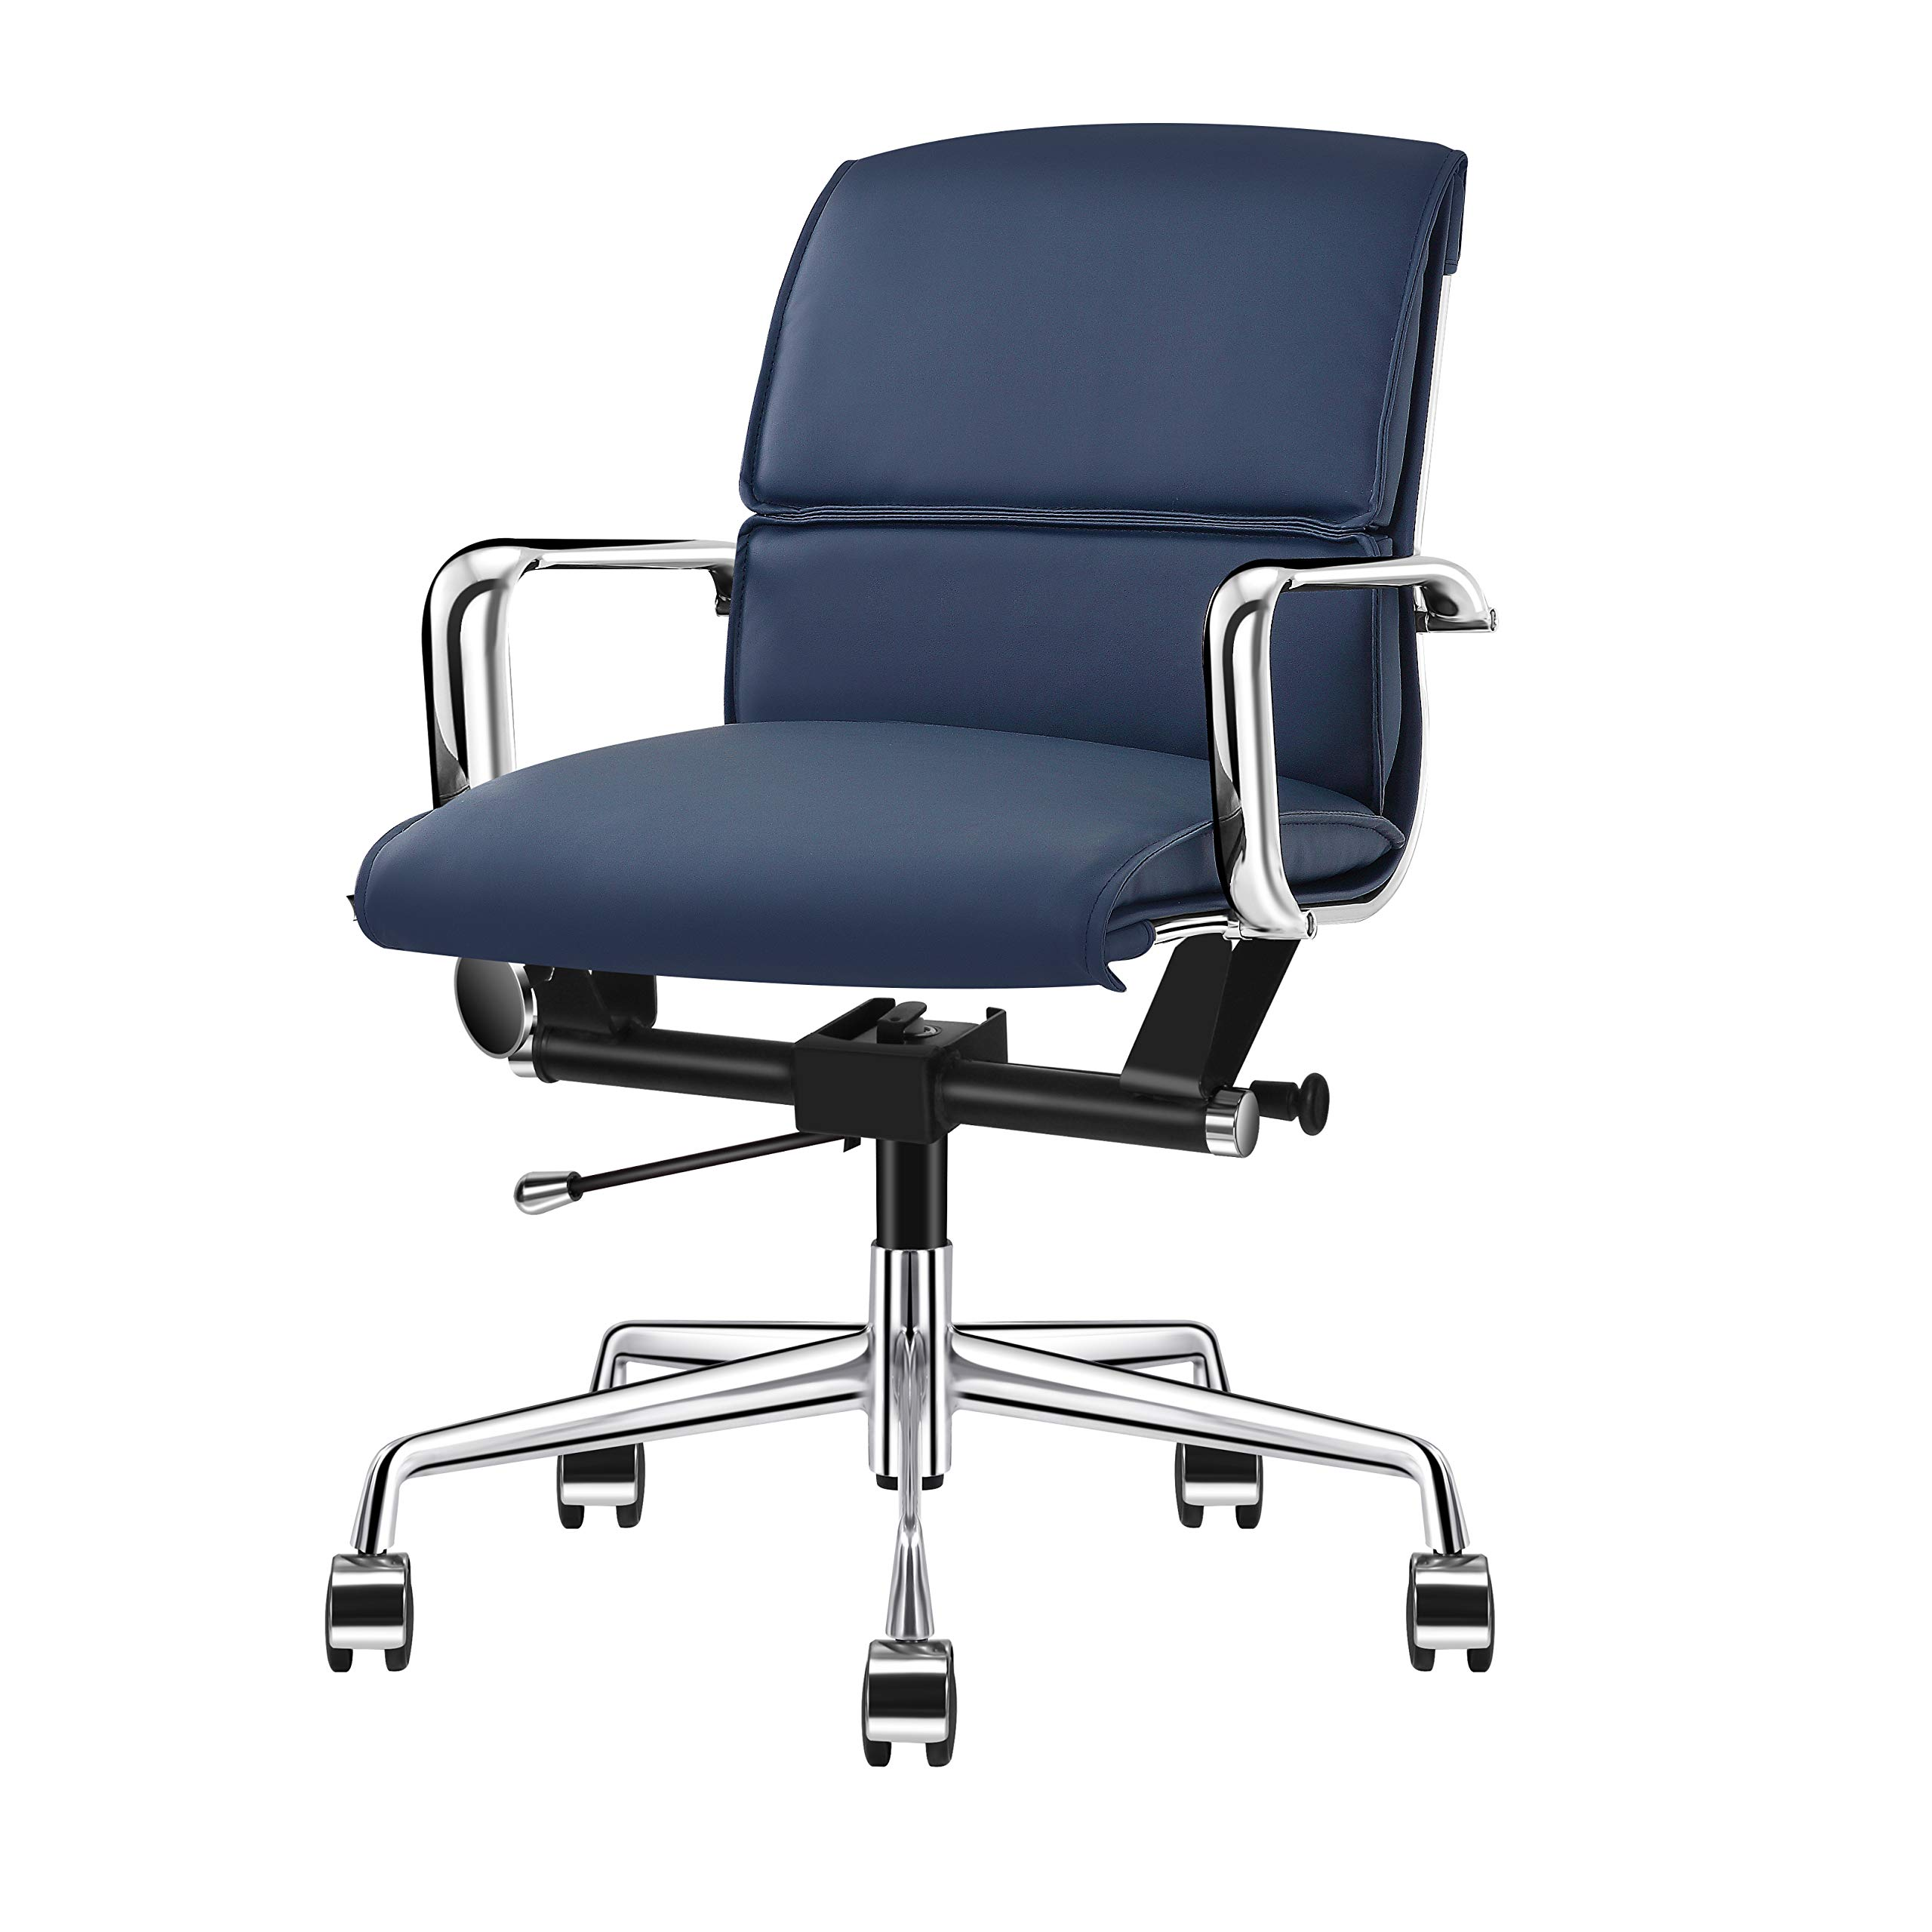 LUXMOD Mid Back Office Chair with Armrest, Adjustable Swivel Chair in Durable Vegan Leather, Ergonomic Desk Chair for Extra Back & Lumbar Support – Navy